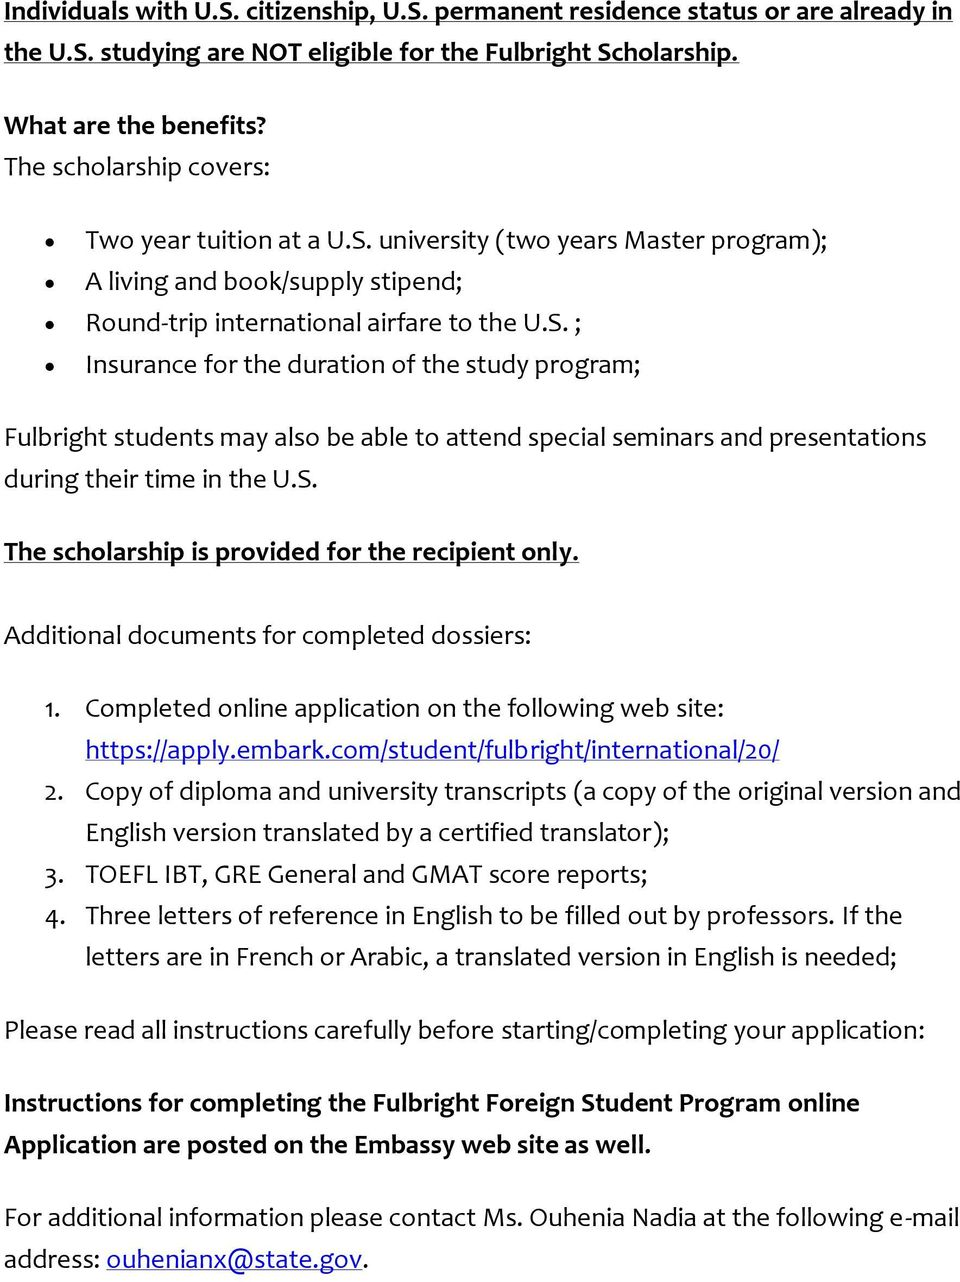 university (two years Master program); A living and book/supply stipend; Round-trip international airfare to the U.S.